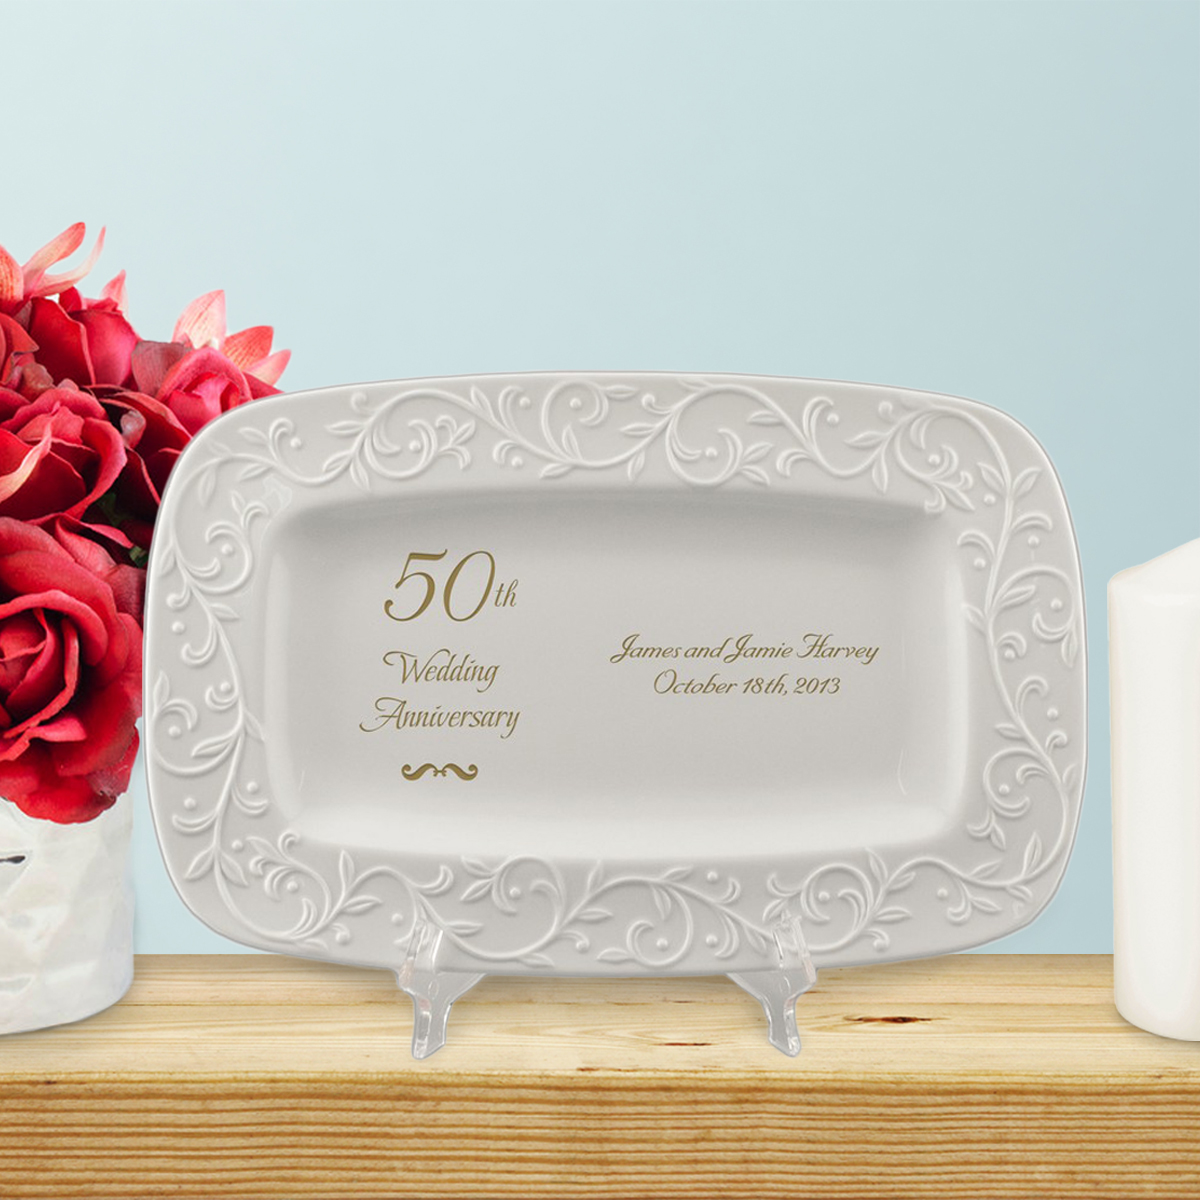 50th wedding anniversary gifts